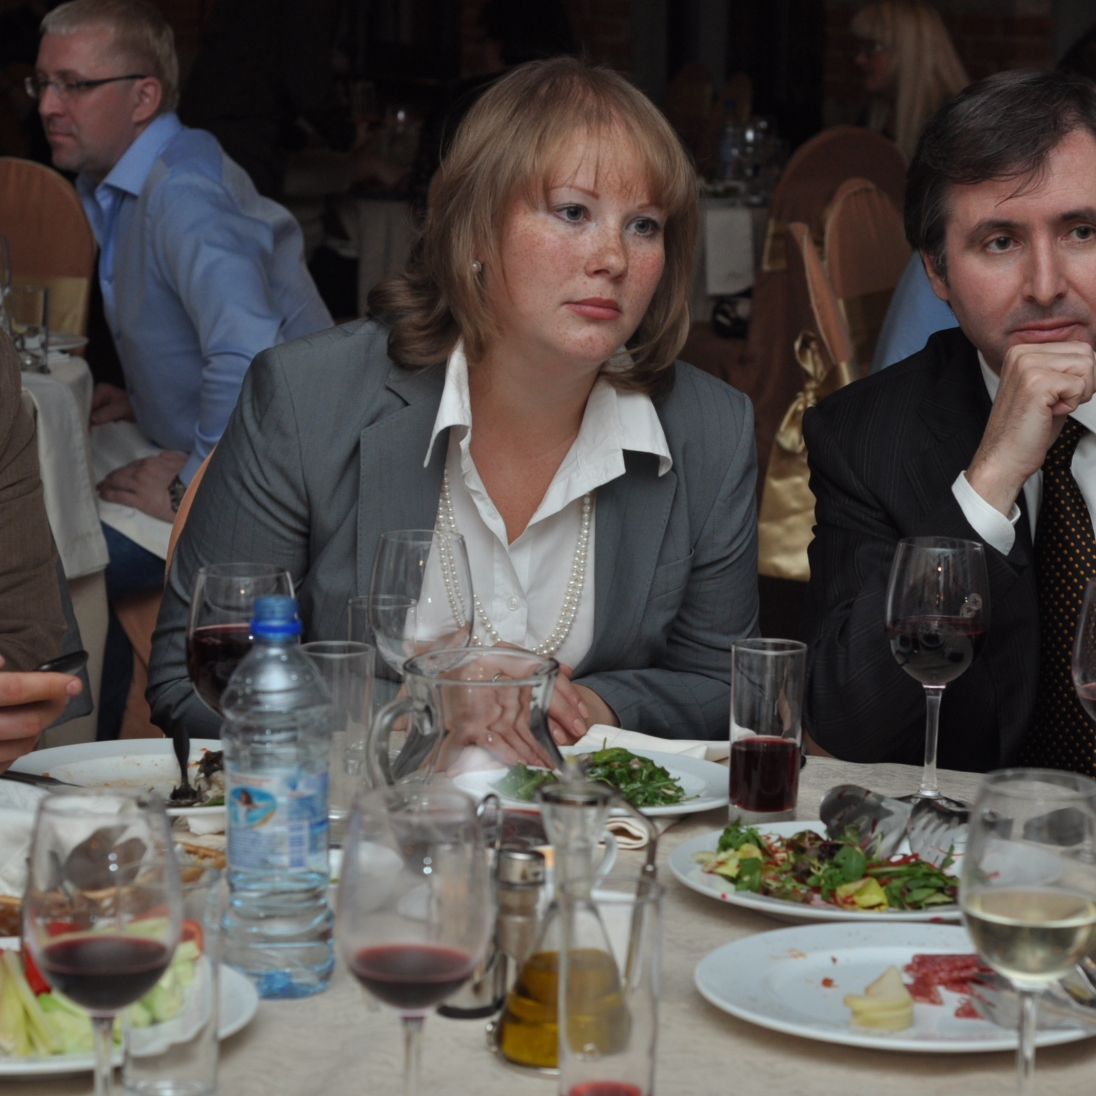 Interpreting at an event hosted by the International Olive Oil Council